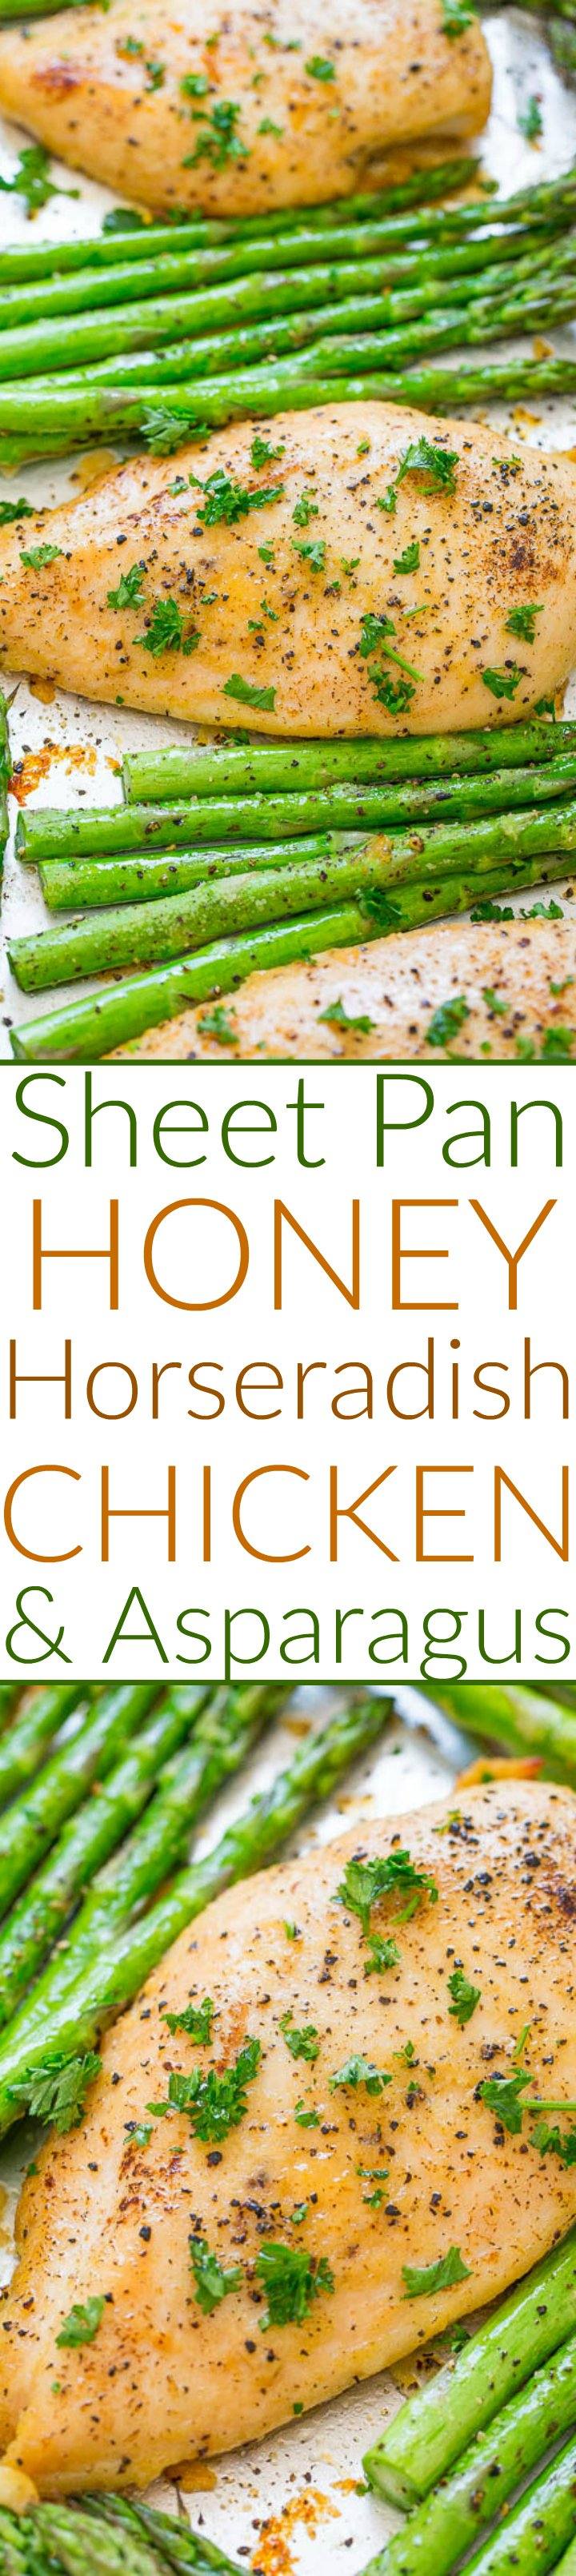 Honey Horseradish Sheet Pan Chicken and Asparagus — The perfect balance of sweet honey with spicy horseradish in this EASY, HEALTHY recipe that's ready in 30 minutes!! Juicy chicken with crisp-tender asparagus for the win!!